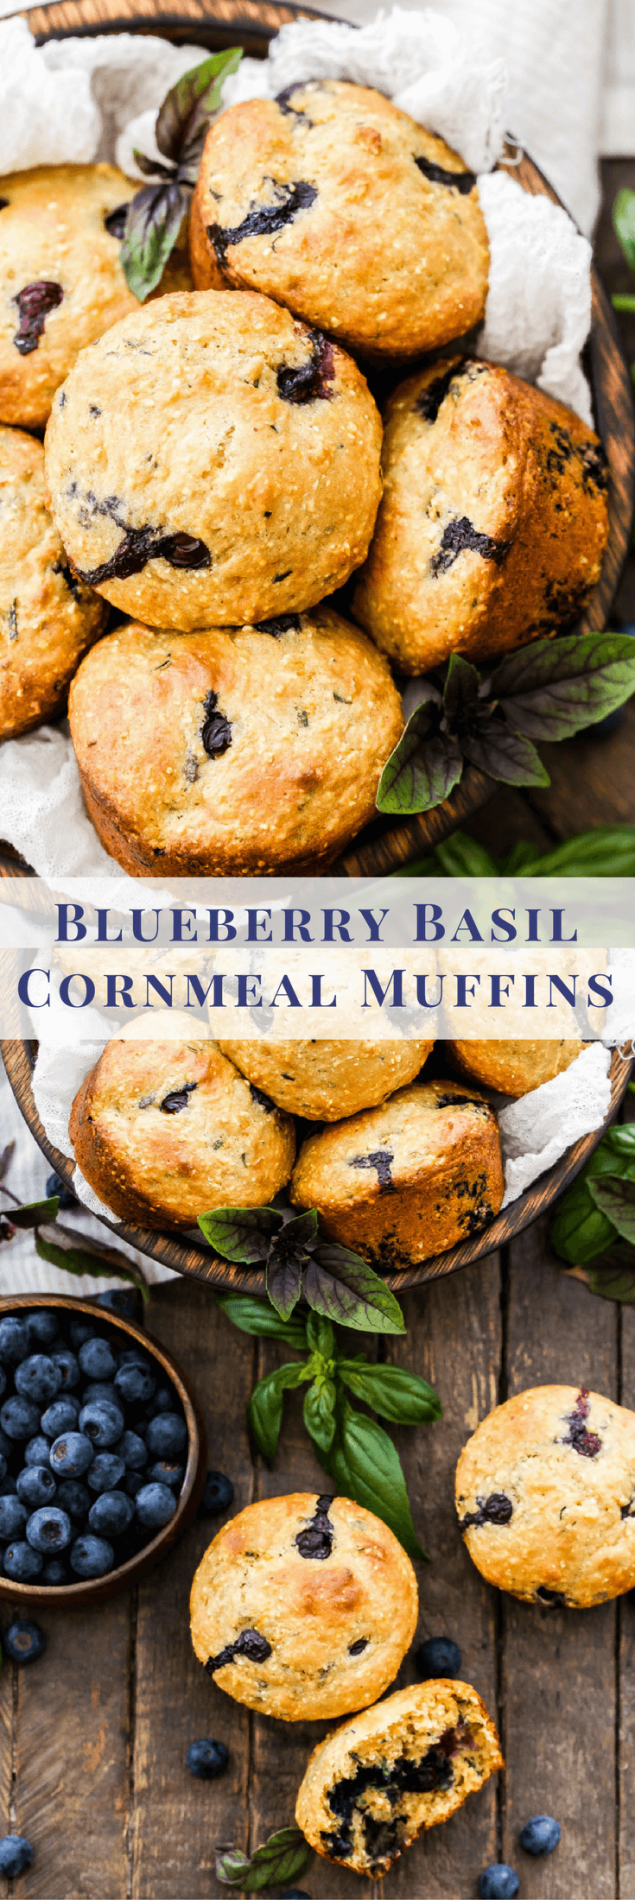 Blueberry Basil Cornmeal Muffins are a delicious and healthy breakfast treat! Whole grain, sweetened with honey, loaded with blueberries and the perfect amount of fresh basil for a unique twist!